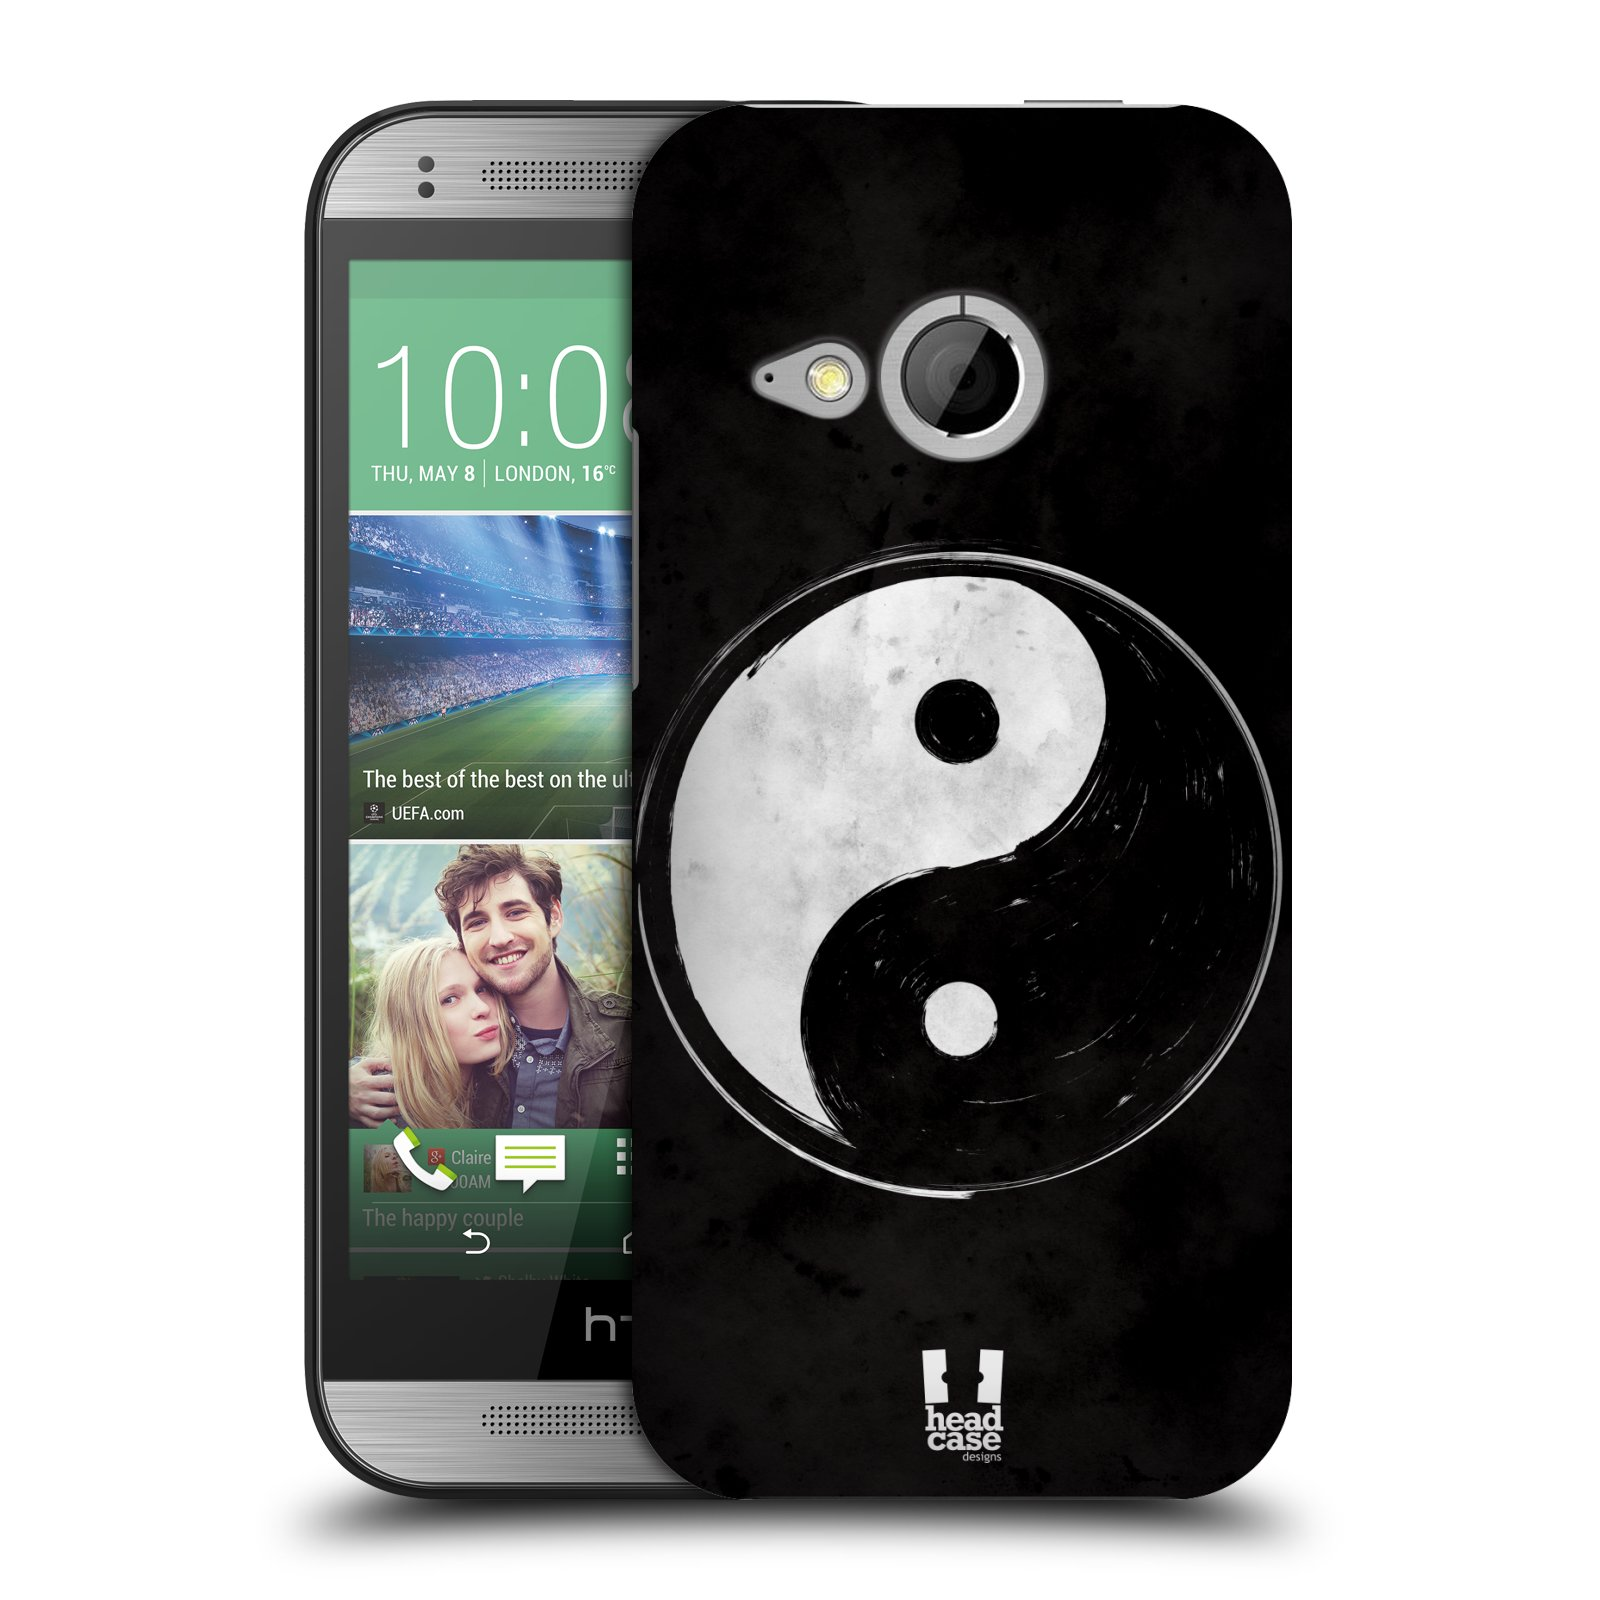 HEAD CASE DESIGNS YIN AND YANG COLLECTION HARD BACK CASE FOR HTC ONE MINI 2